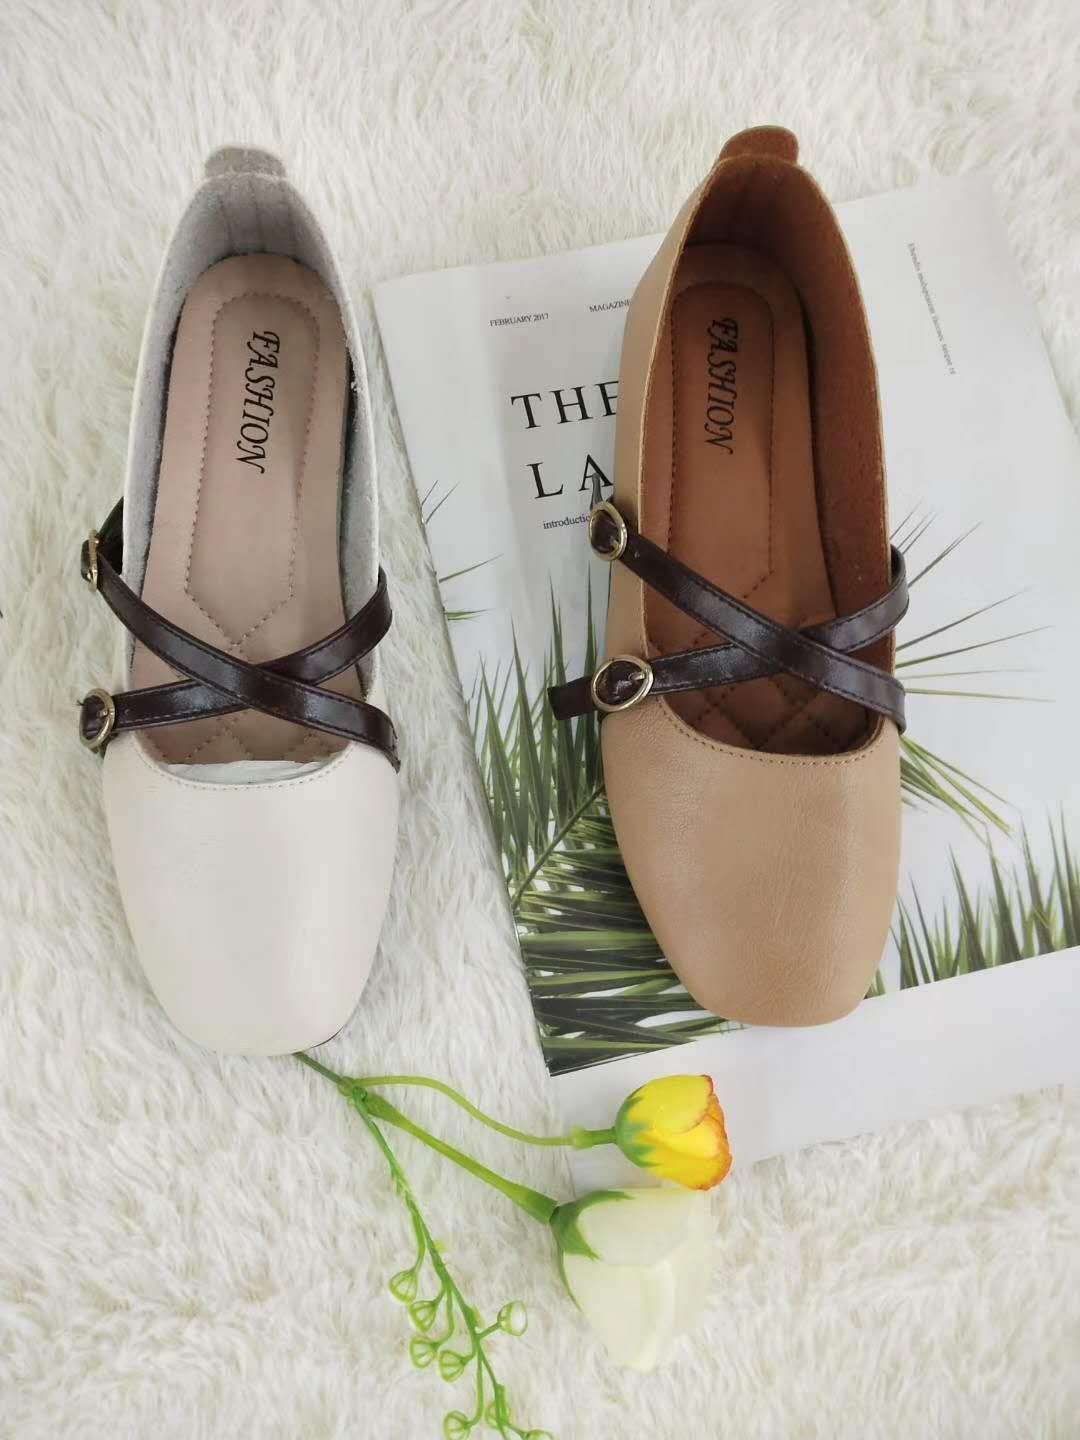 Handmade leather shoes fpr women - white and brown color